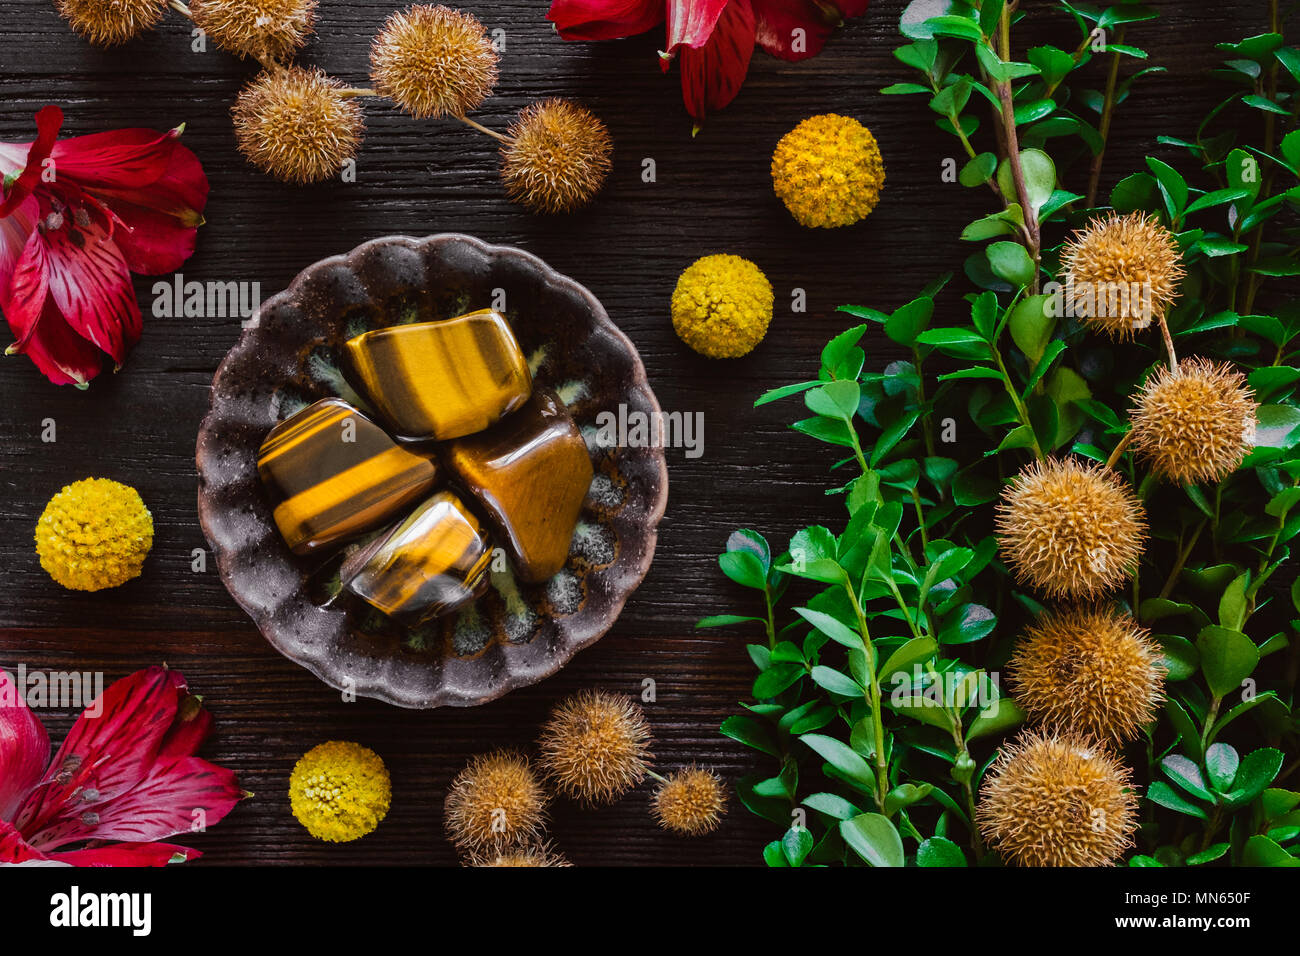 Tiger's Eye Stones with Plants and Flowers on Dark Wood Table Stock Photo